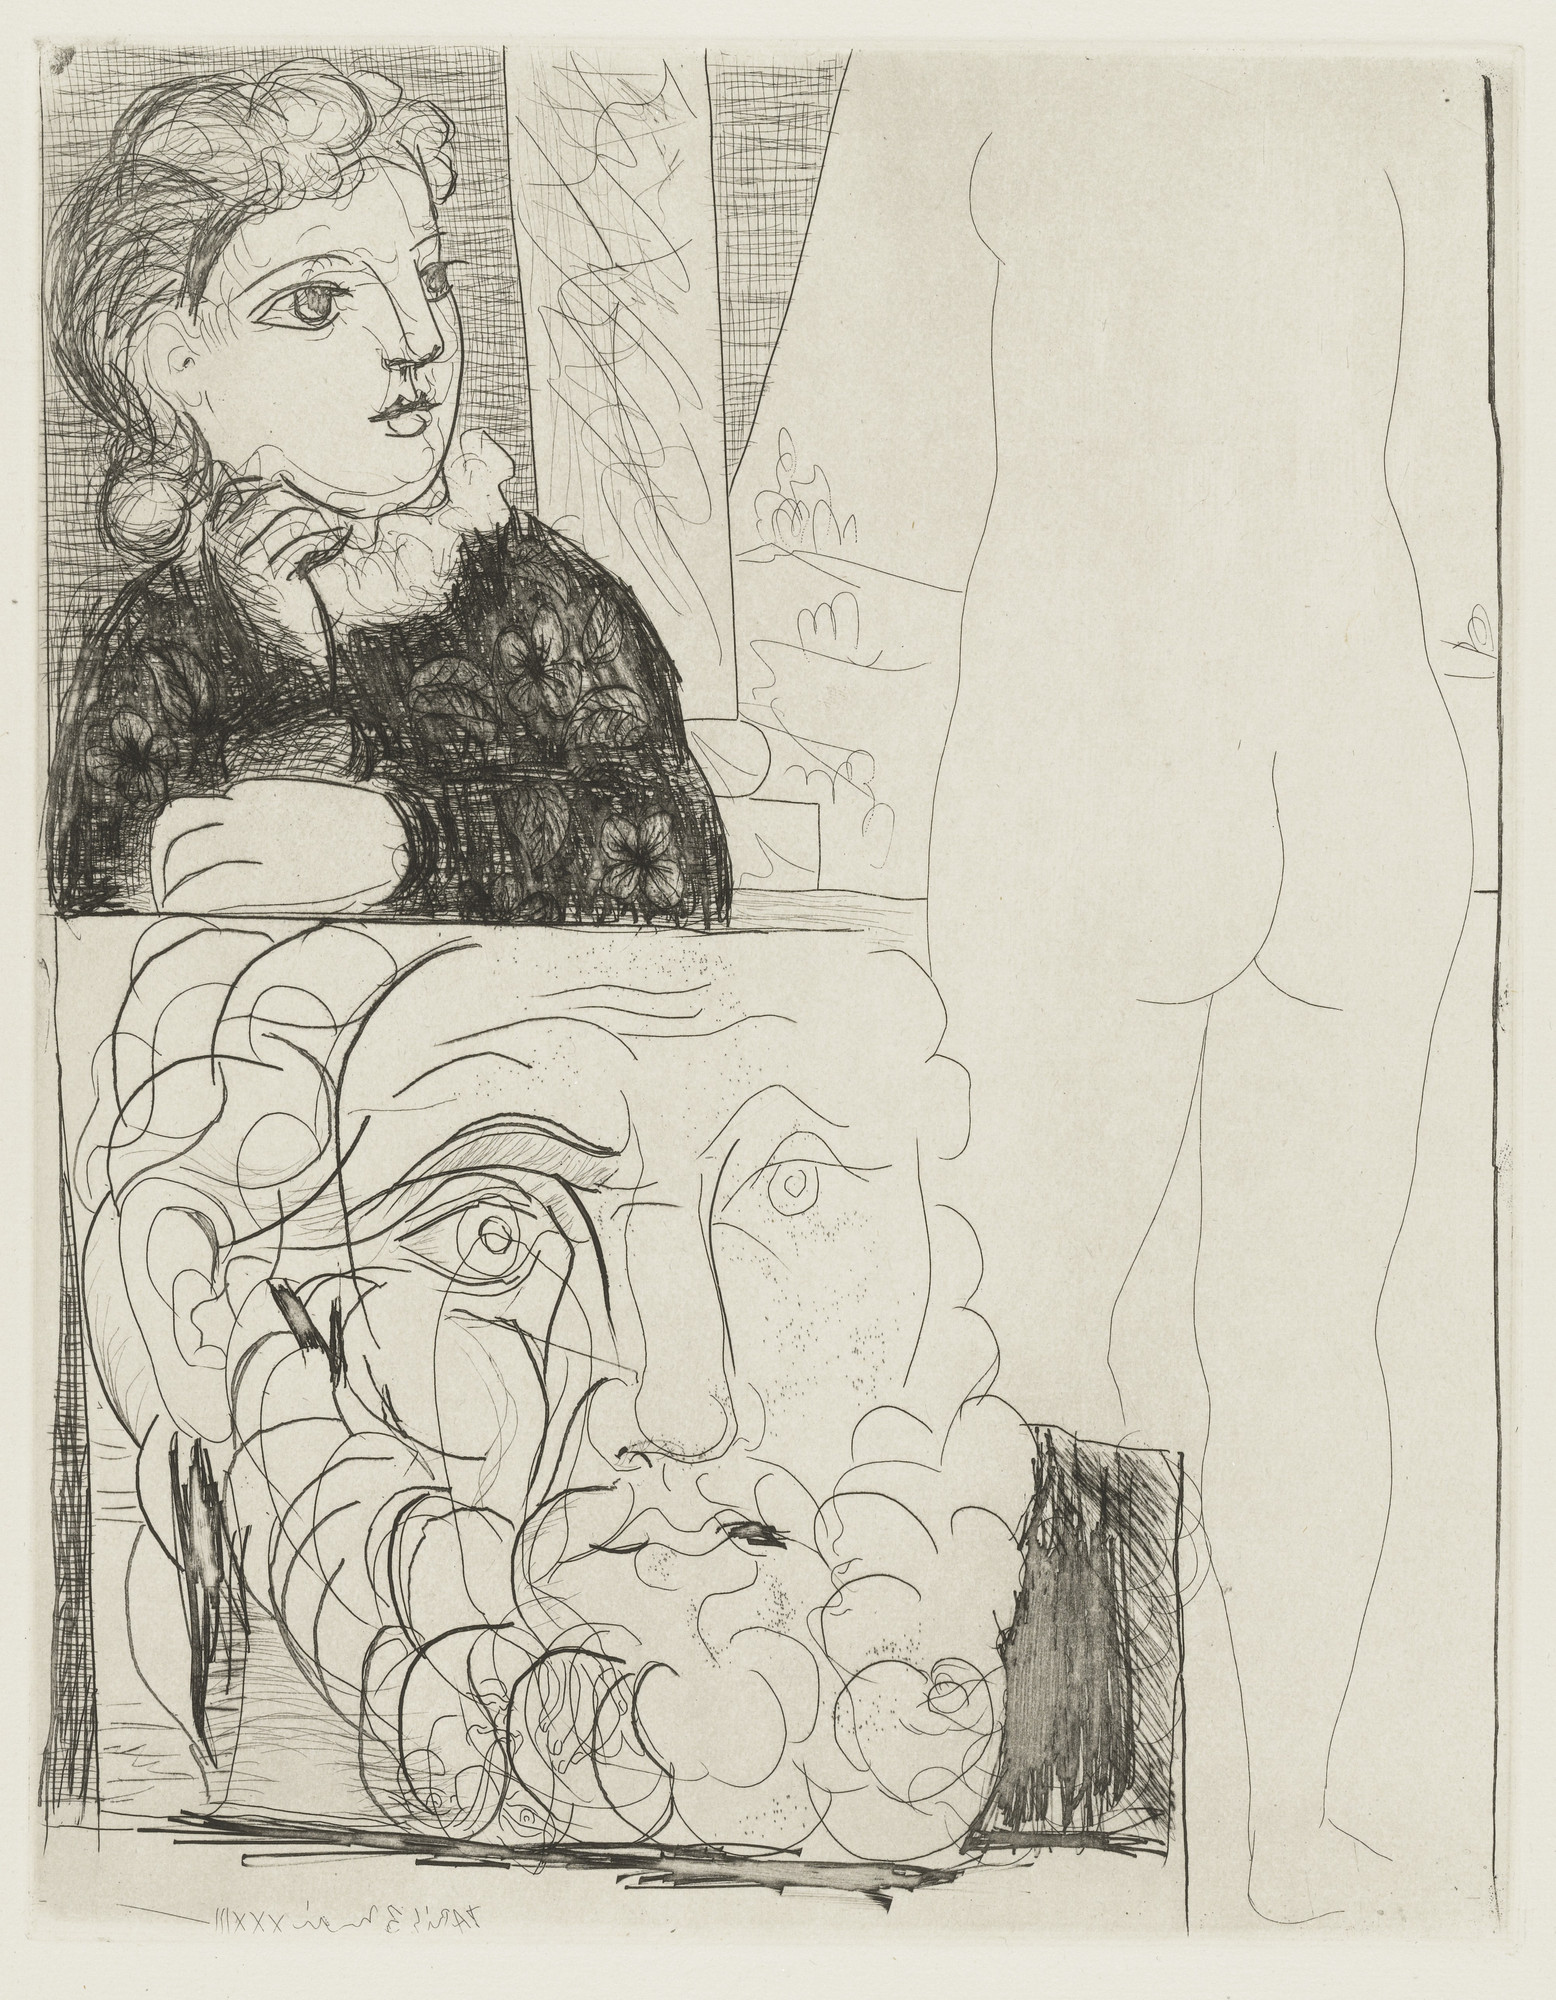 Pablo Picasso. The Maid in the Sculpture Studio (La Bonne dans l'atelier de sculpture) from the Vollard Suite (Suite Vollard). 1933, published 1939